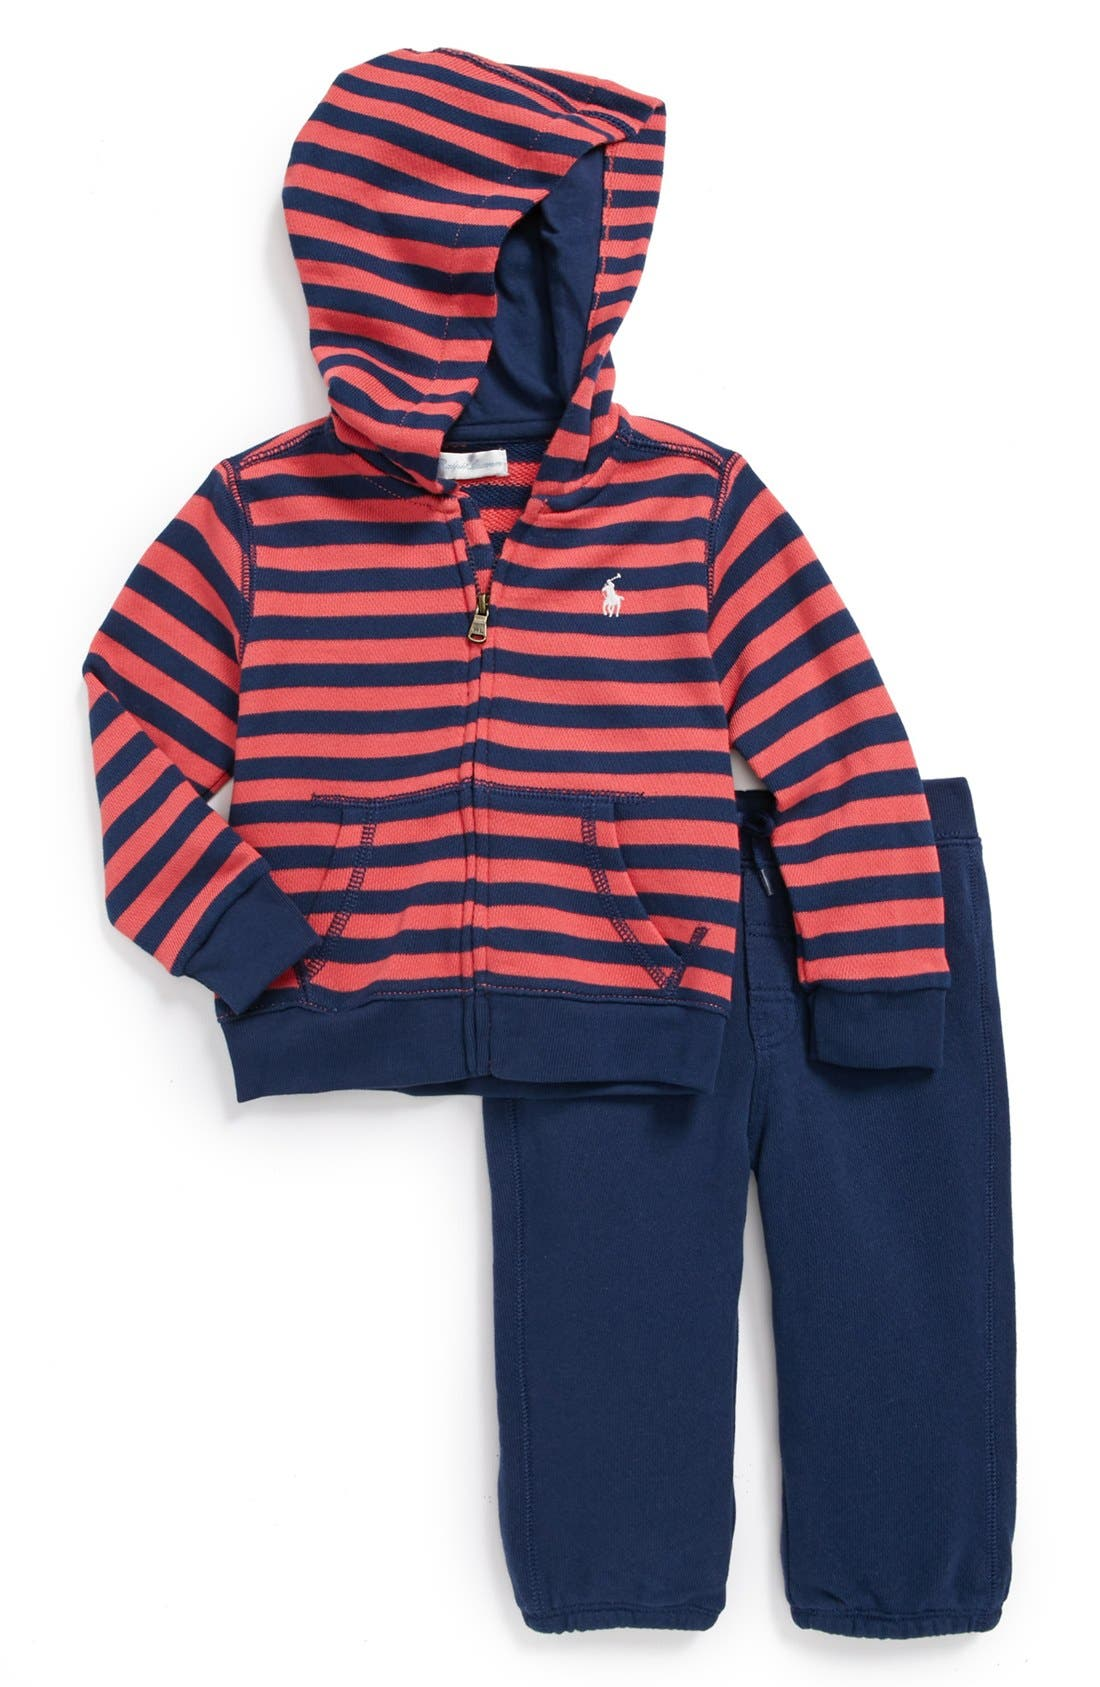 Alternate Image 1 Selected - Ralph Lauren Stripe Hoodie & Sweatpants (Baby Boys)